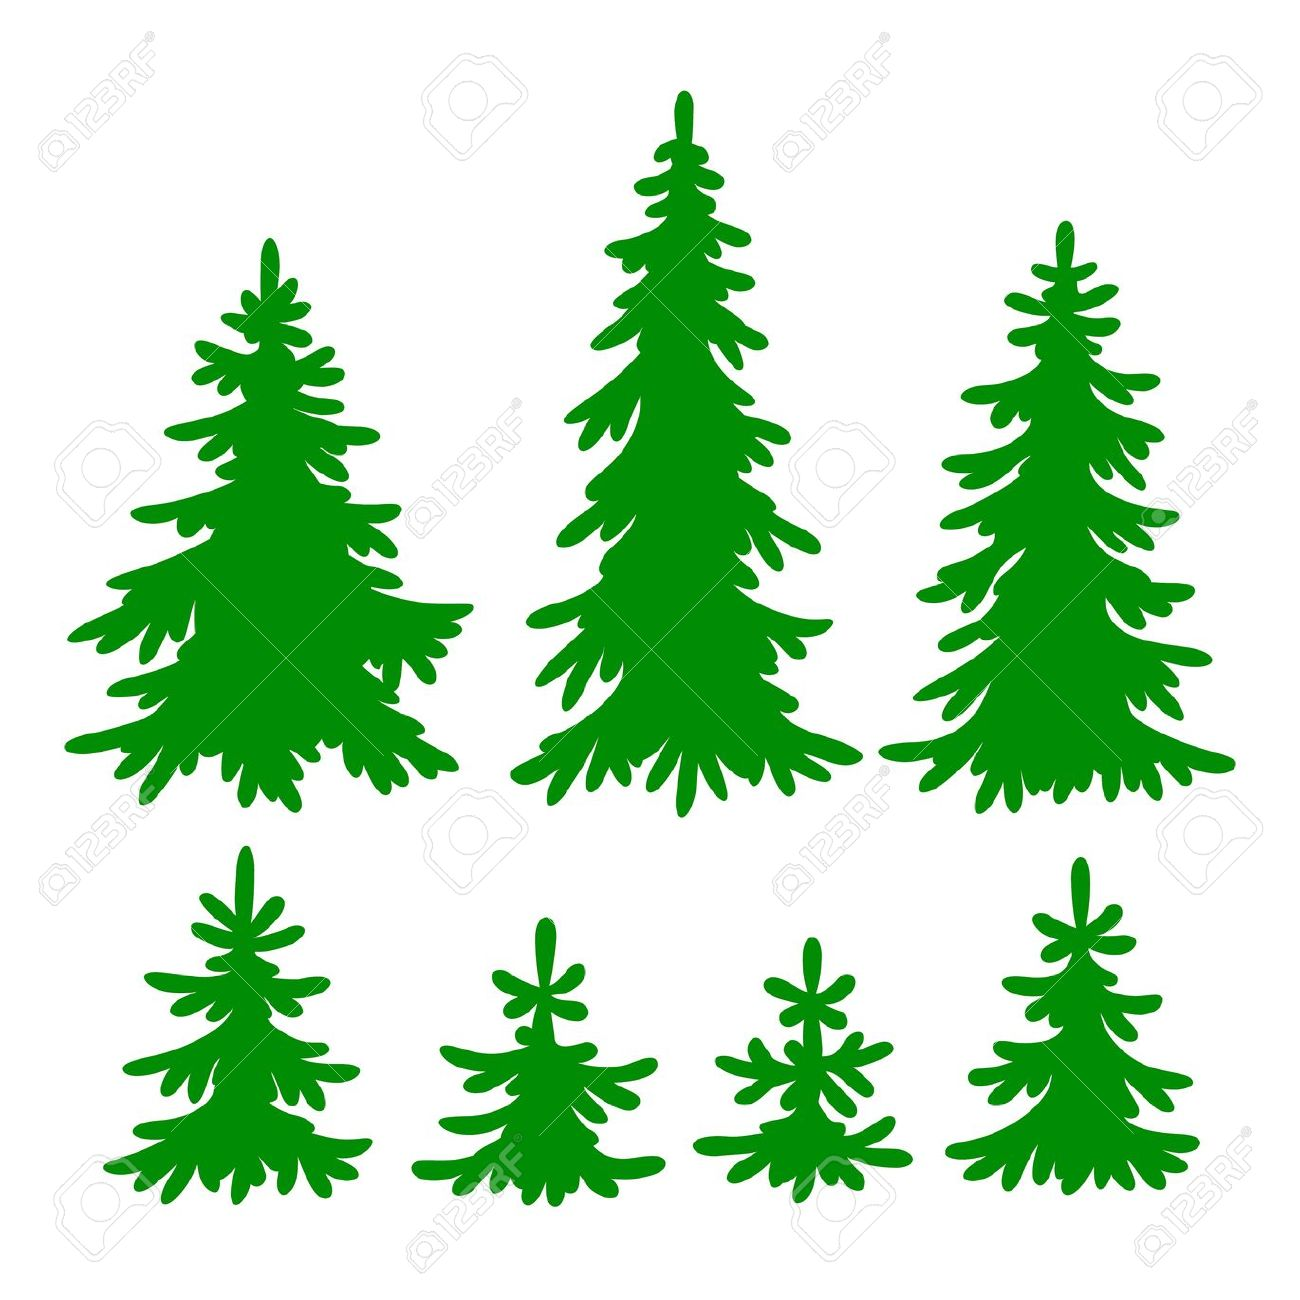 Evergreen Clip Art.